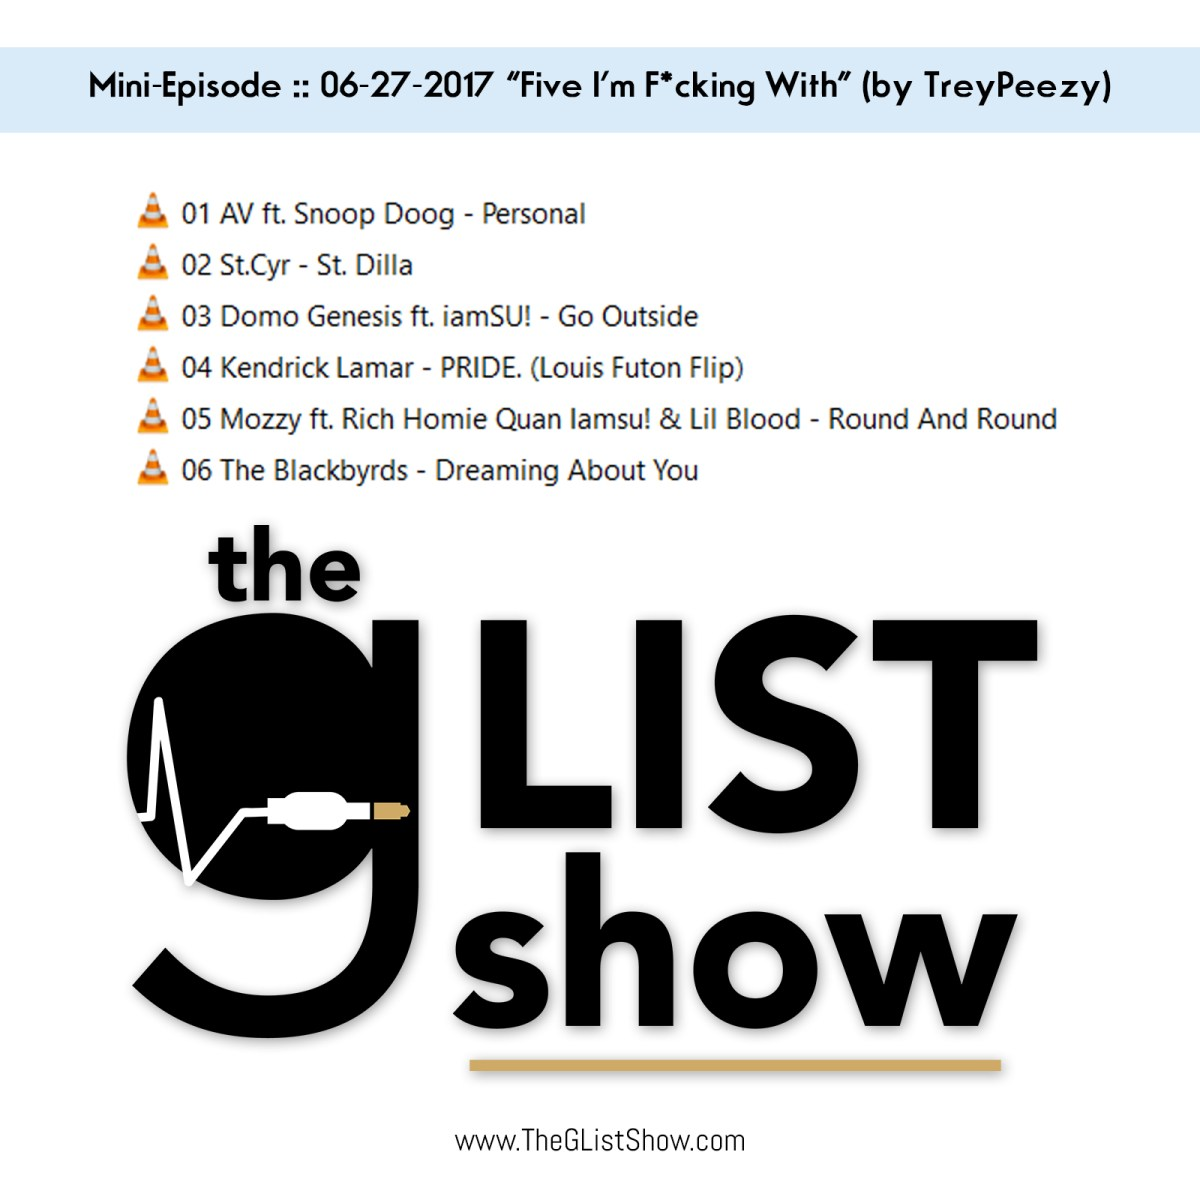 "Podcast: The G-List Show ""Five I'm Fucking With"" (by TreyPeezy) (@TheGListShow)"